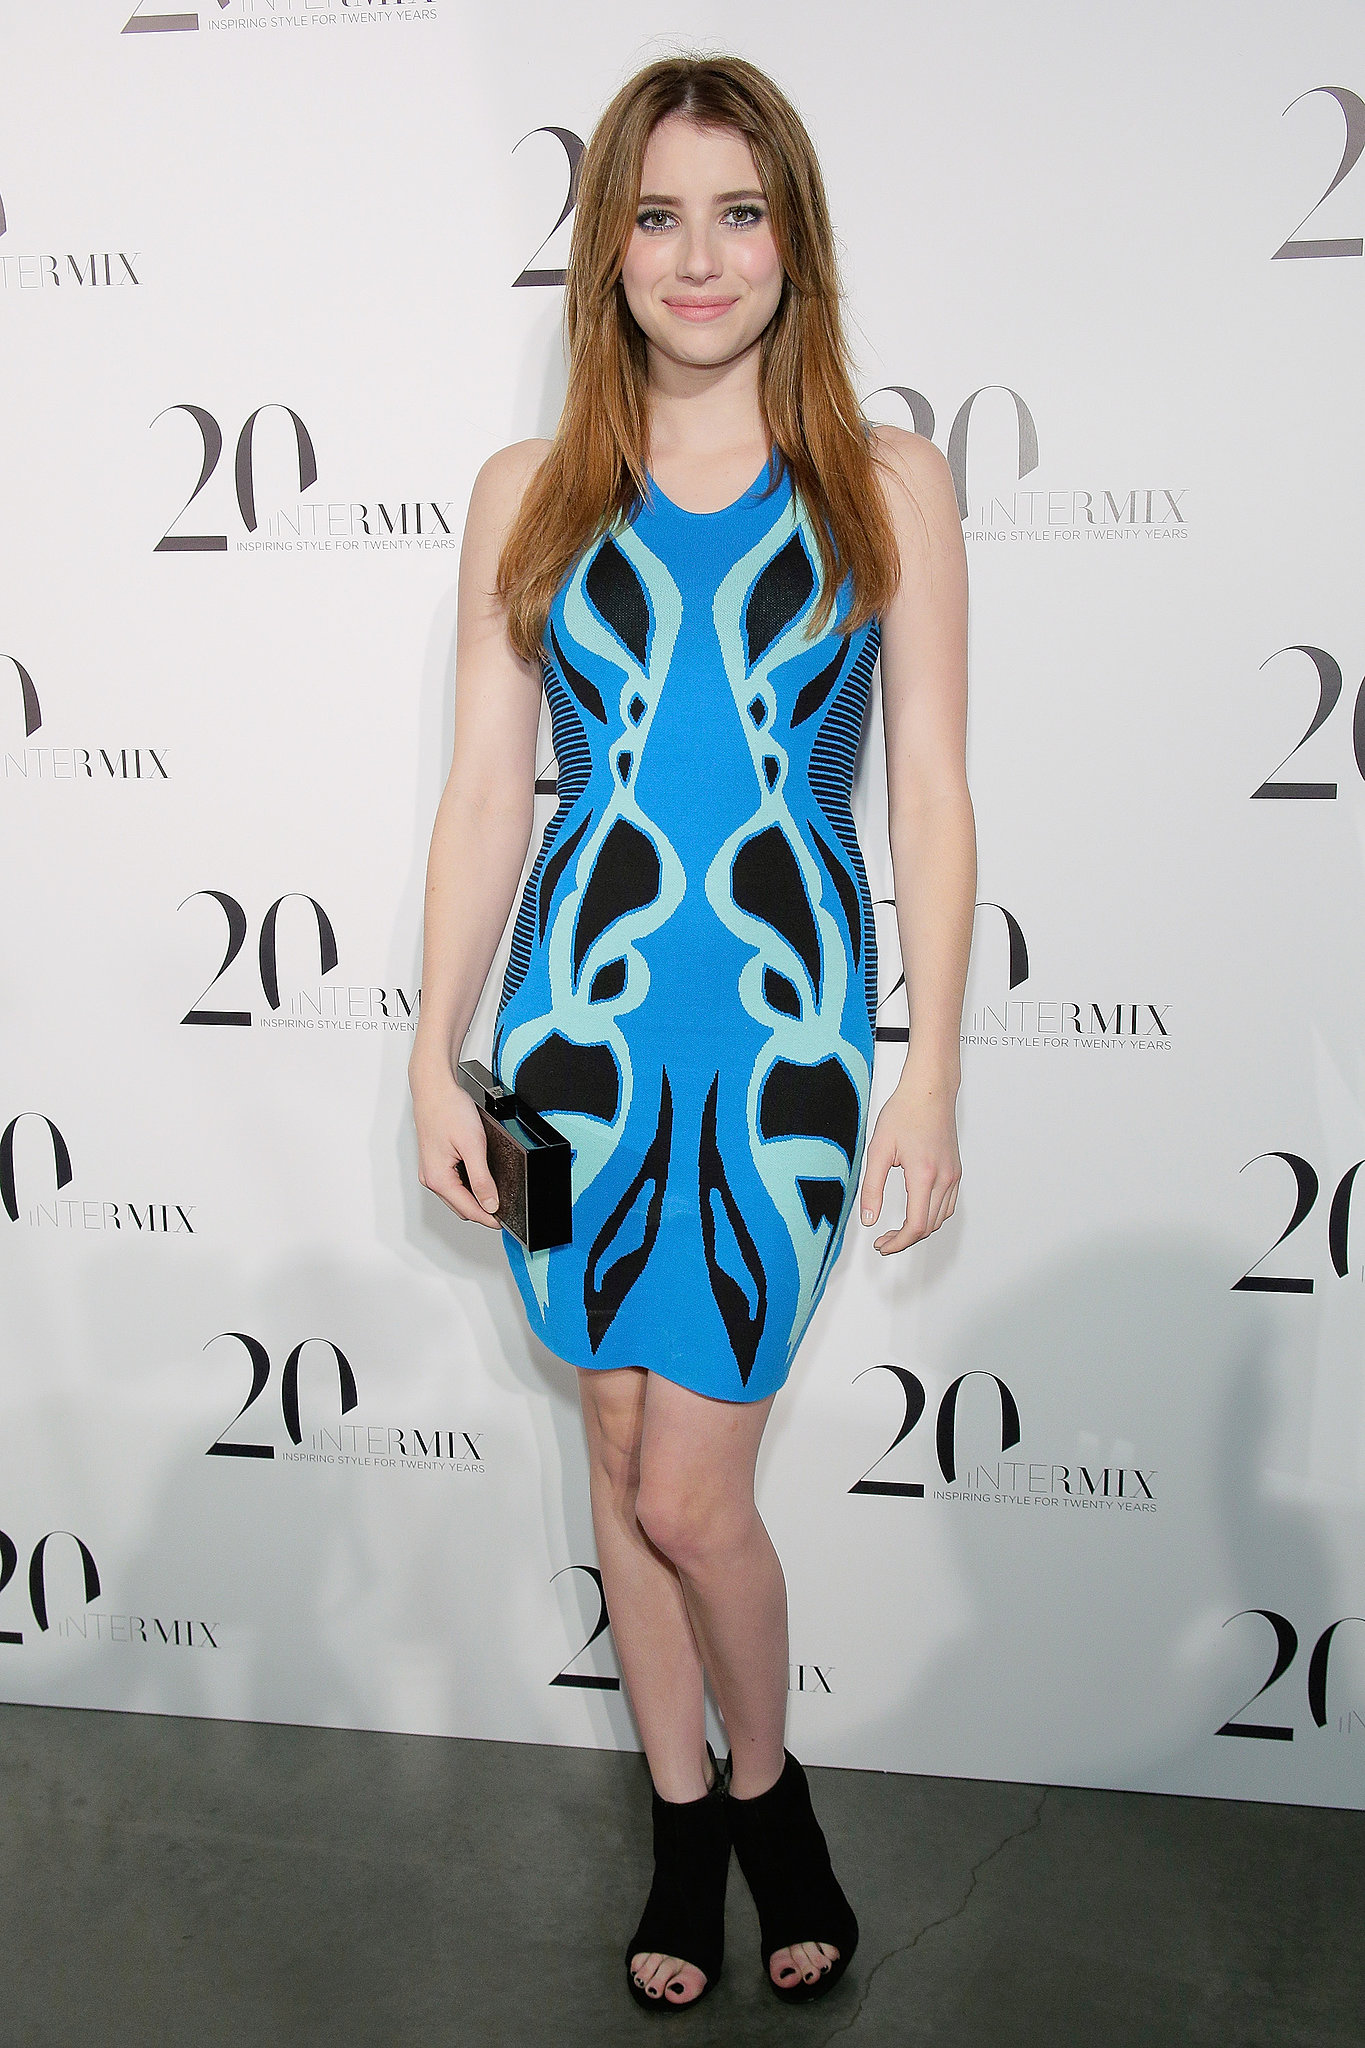 At the Intermix 20th Anniversary celebration in NYC, Emma Roberts showed off a fabulous exclusive Ohne Titel for Intermix minidress and black peep-toe booties.